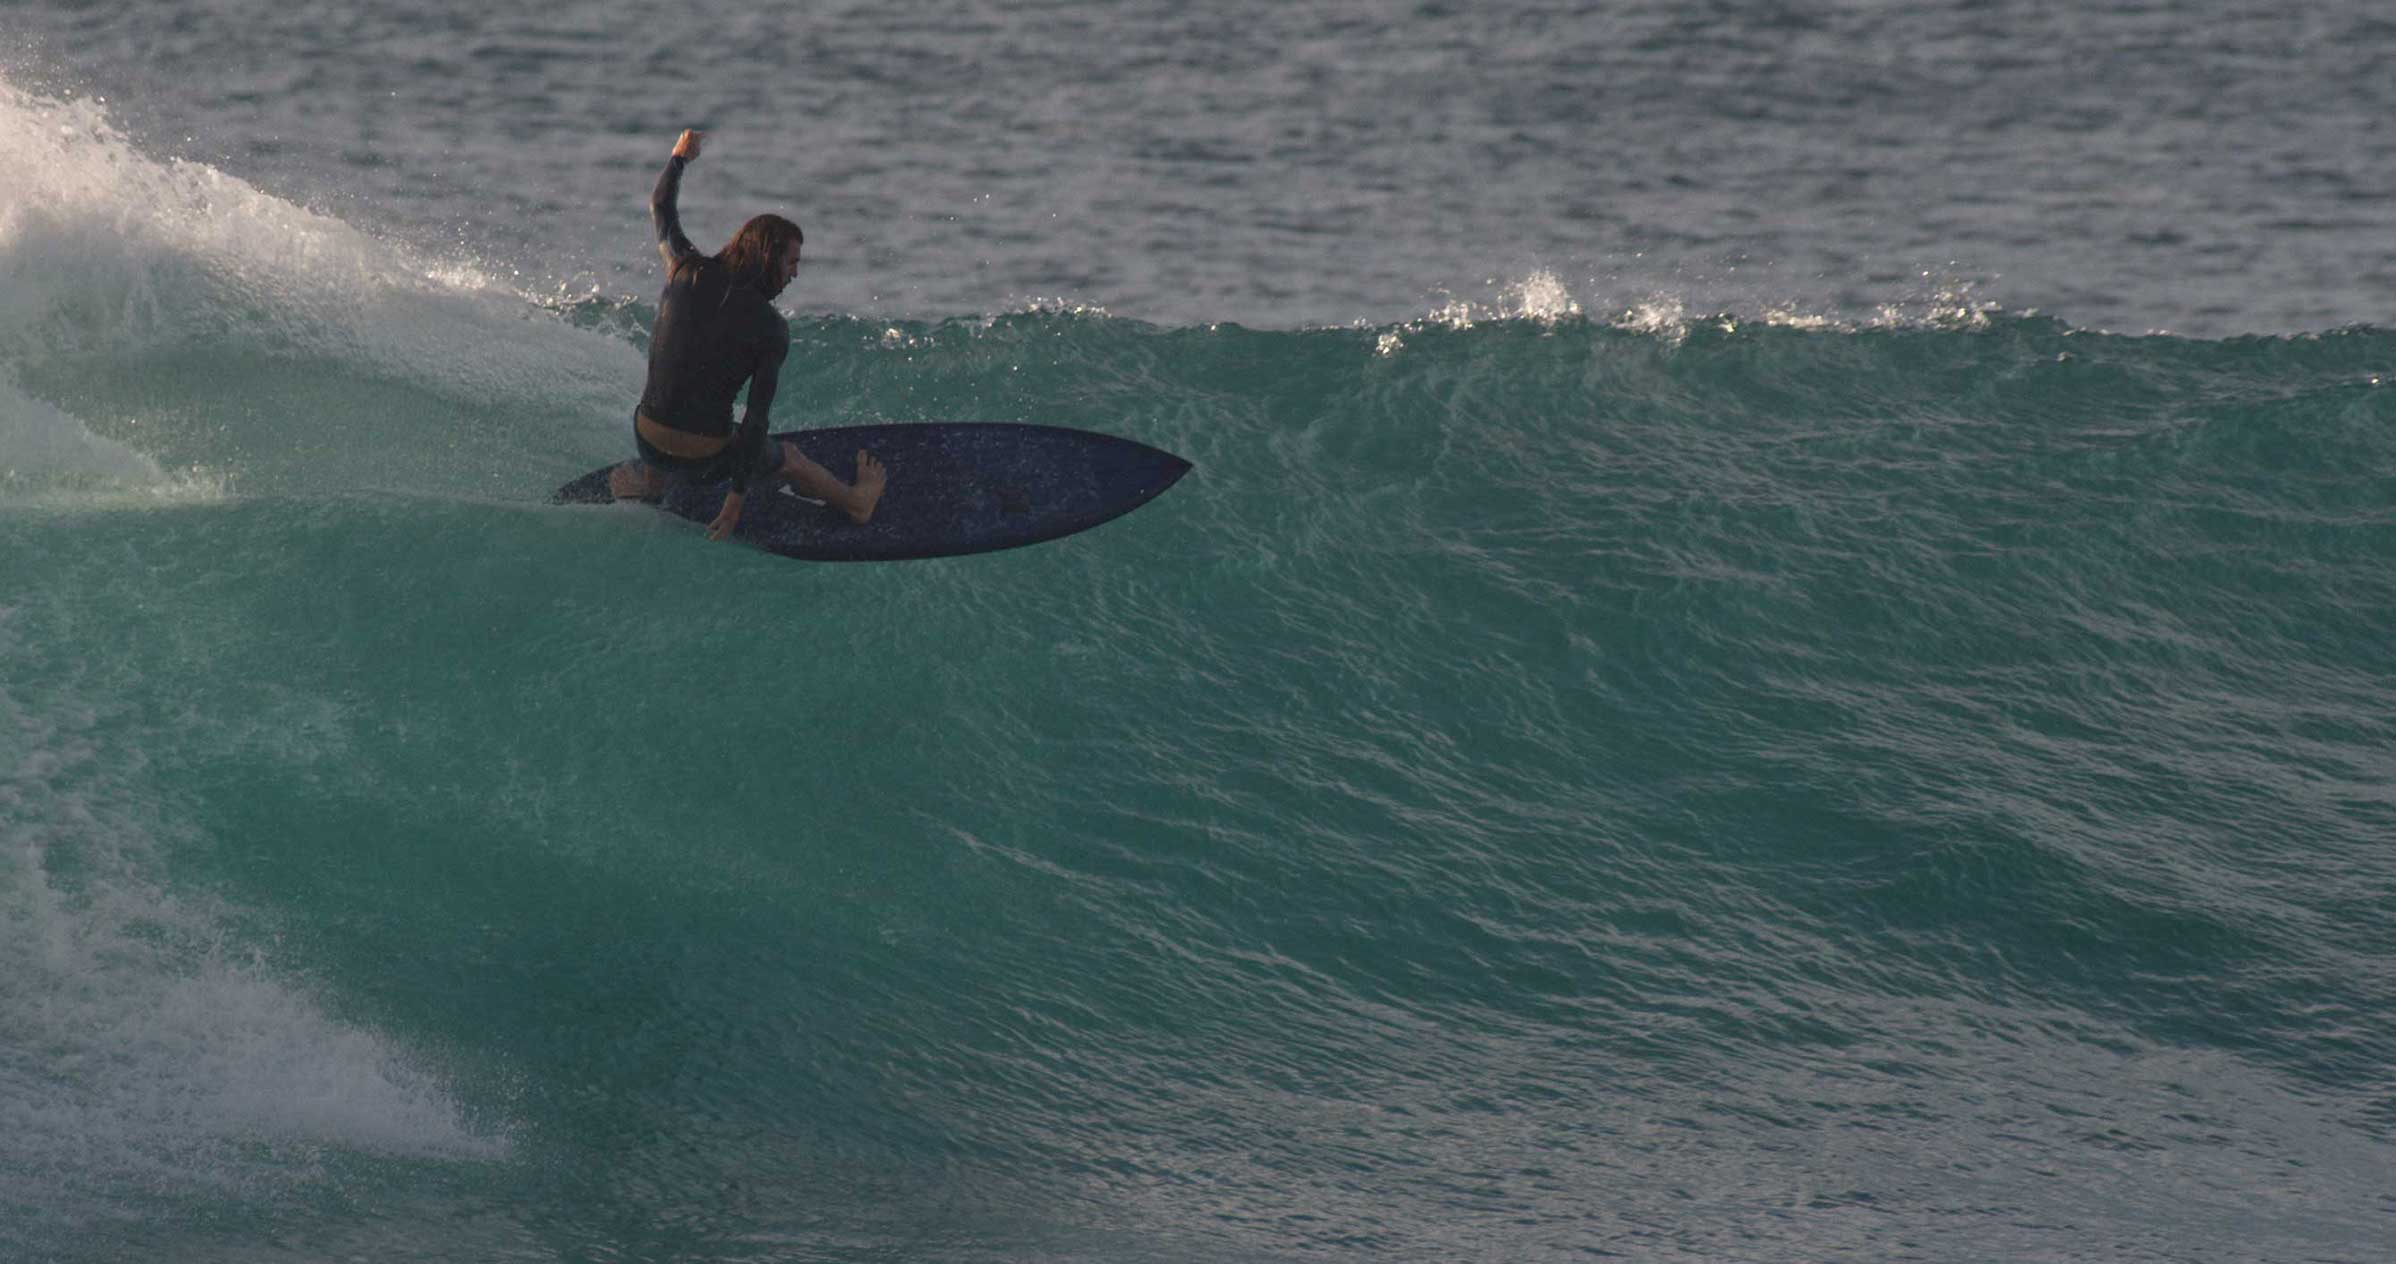 surf movie given